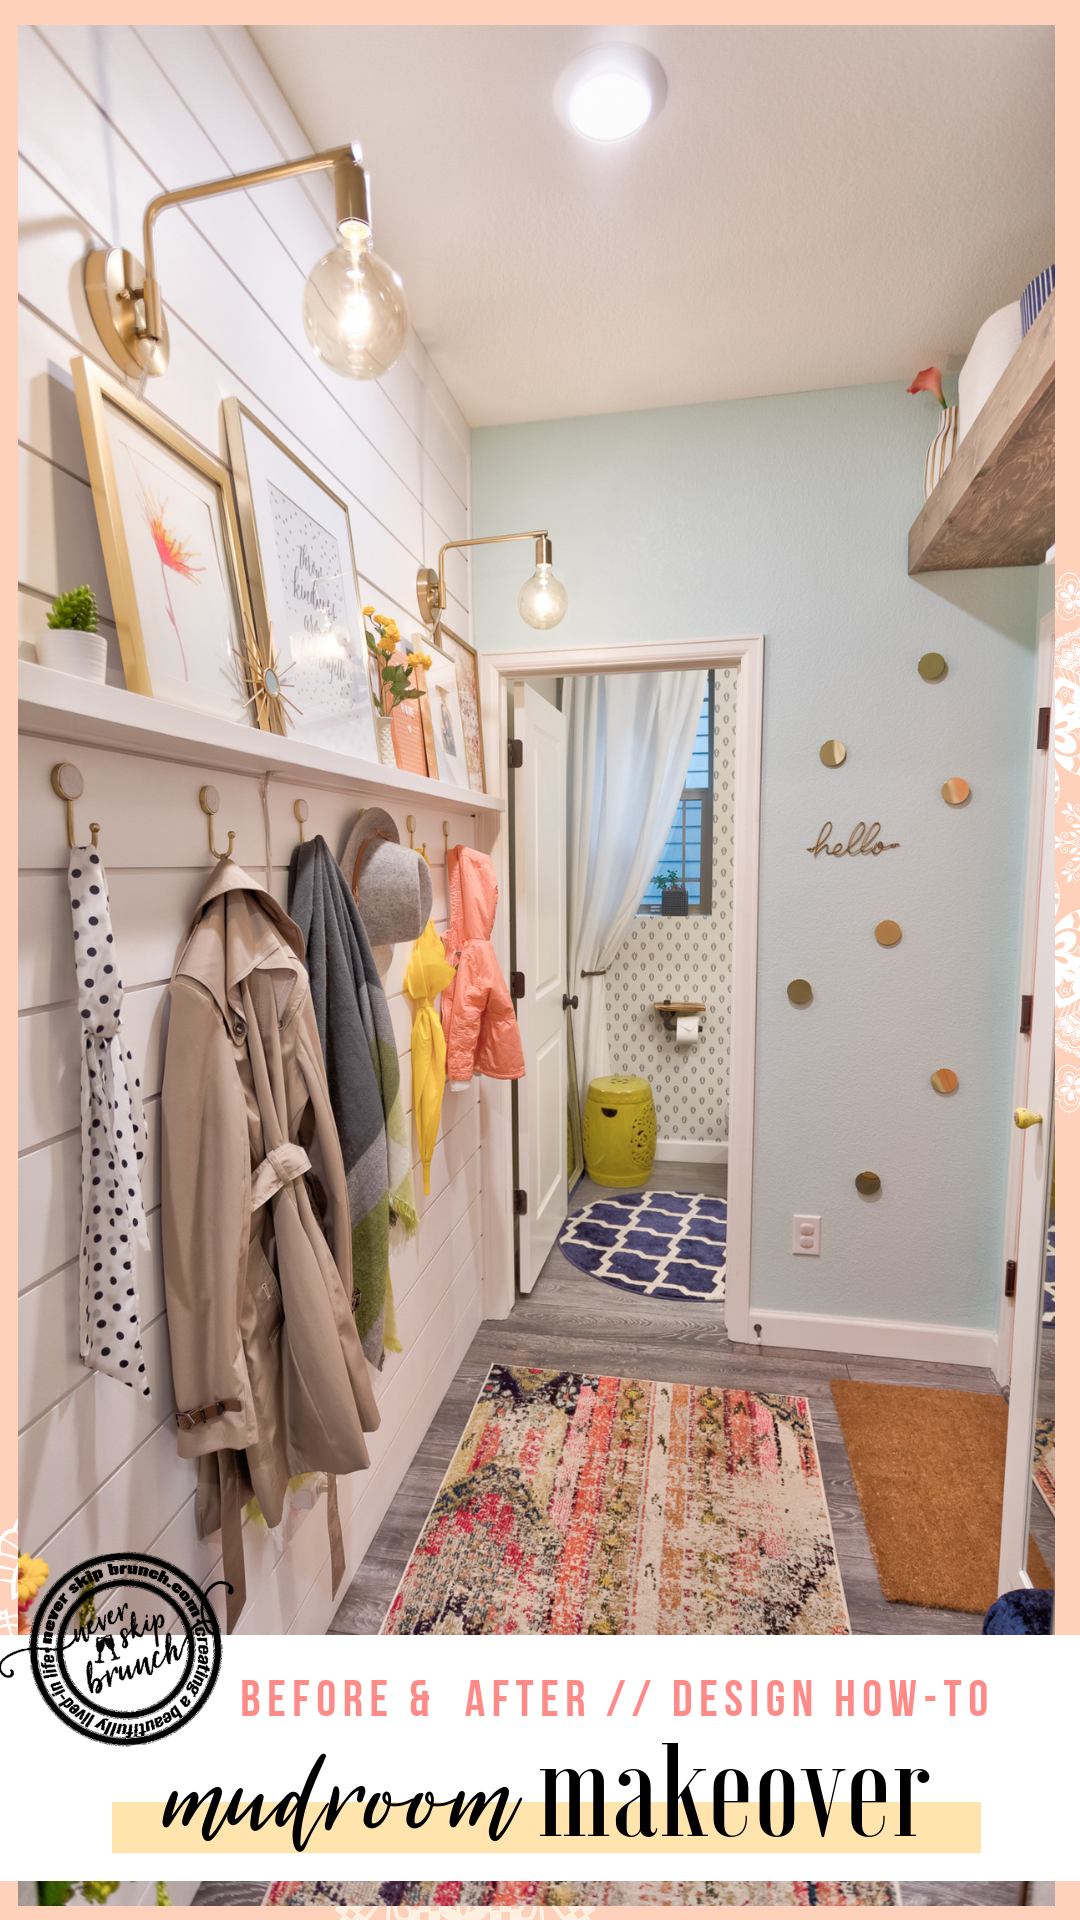 WOW! This mudroom before & after is incredible | mudroom ideas entryway | Mudroom storage | Entryway design | Mudroom Decor | Entryway Decor | Mudroom Ideas | Room reveal | Never Skip Brunch by Cara Newhart | #home #decor #mudroom #interiordesign